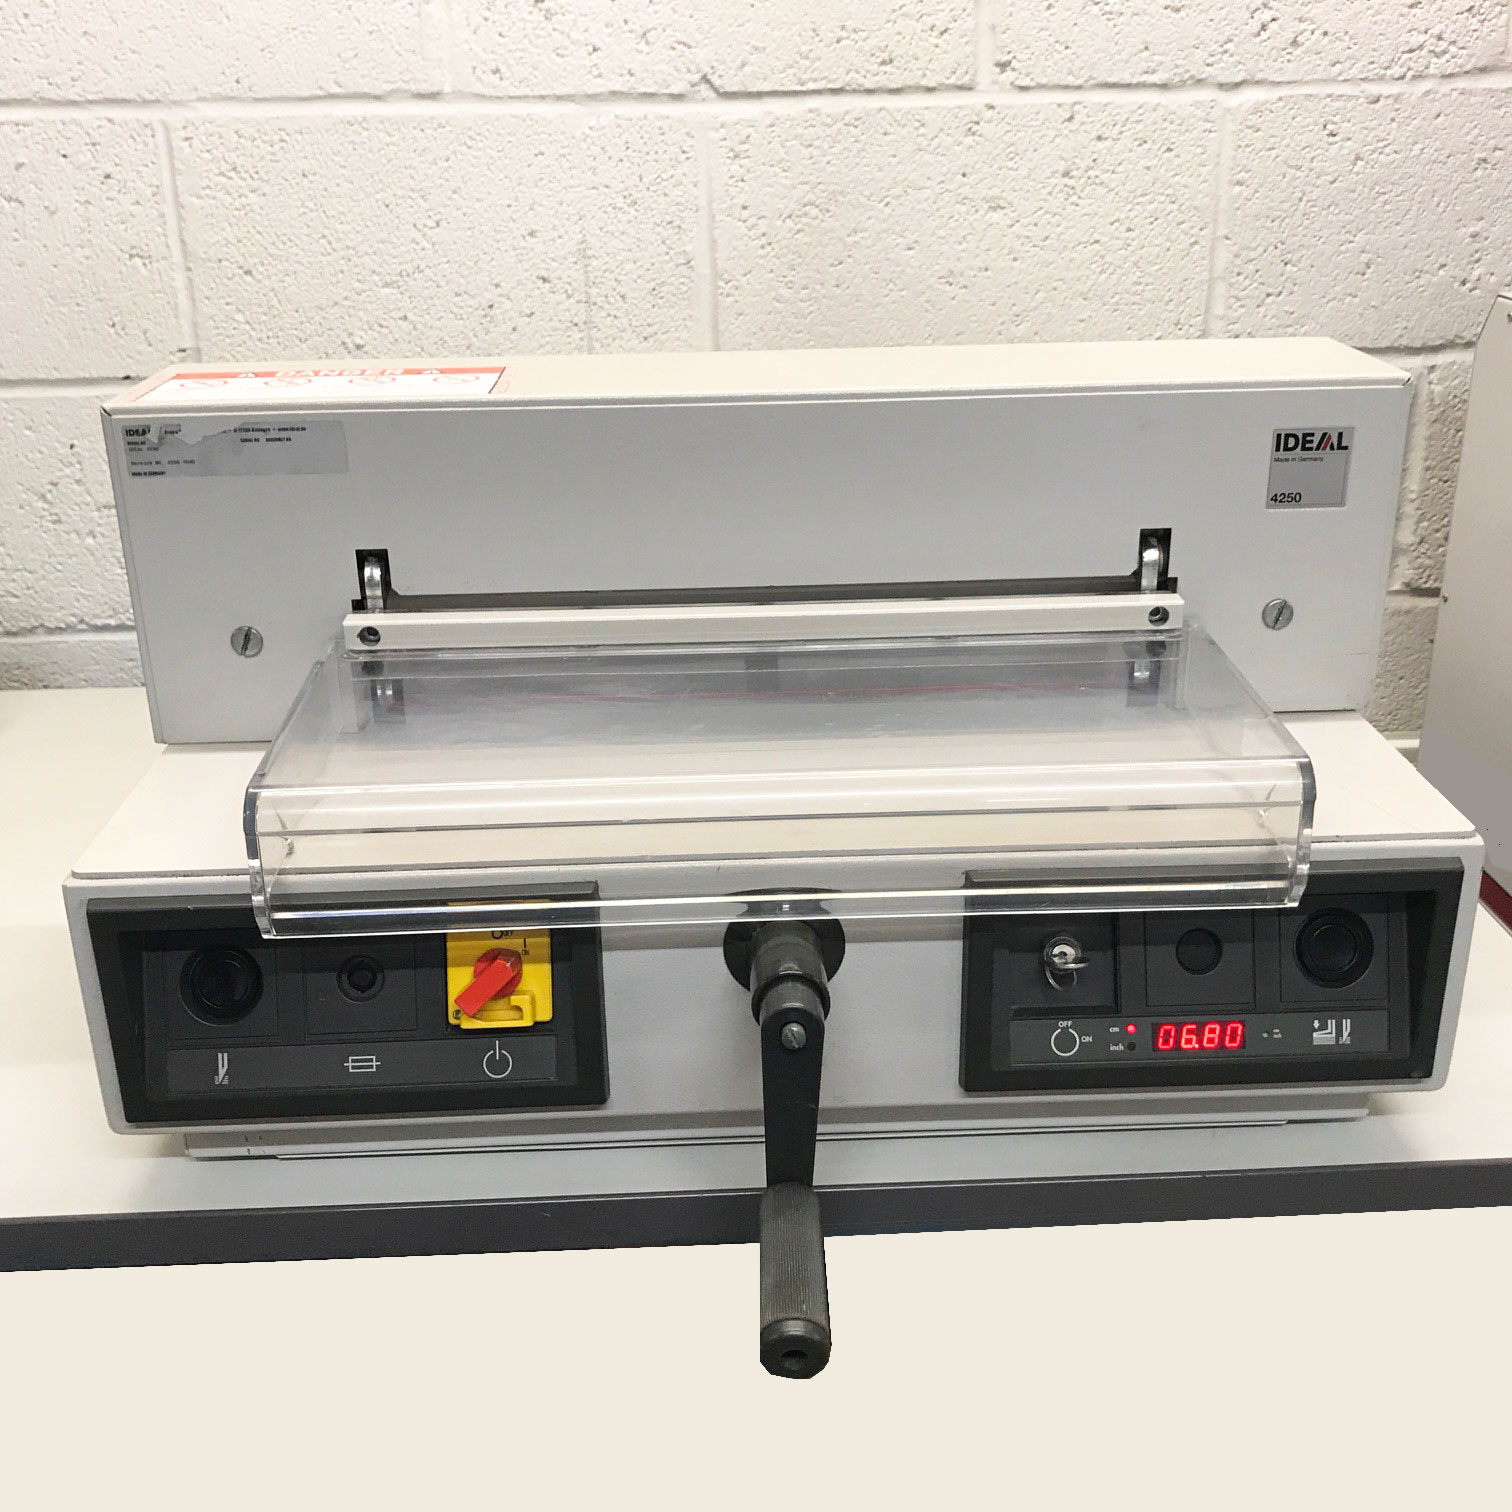 Refurbished IDEAL EBA 435 / 4250 Desktop Guillotine